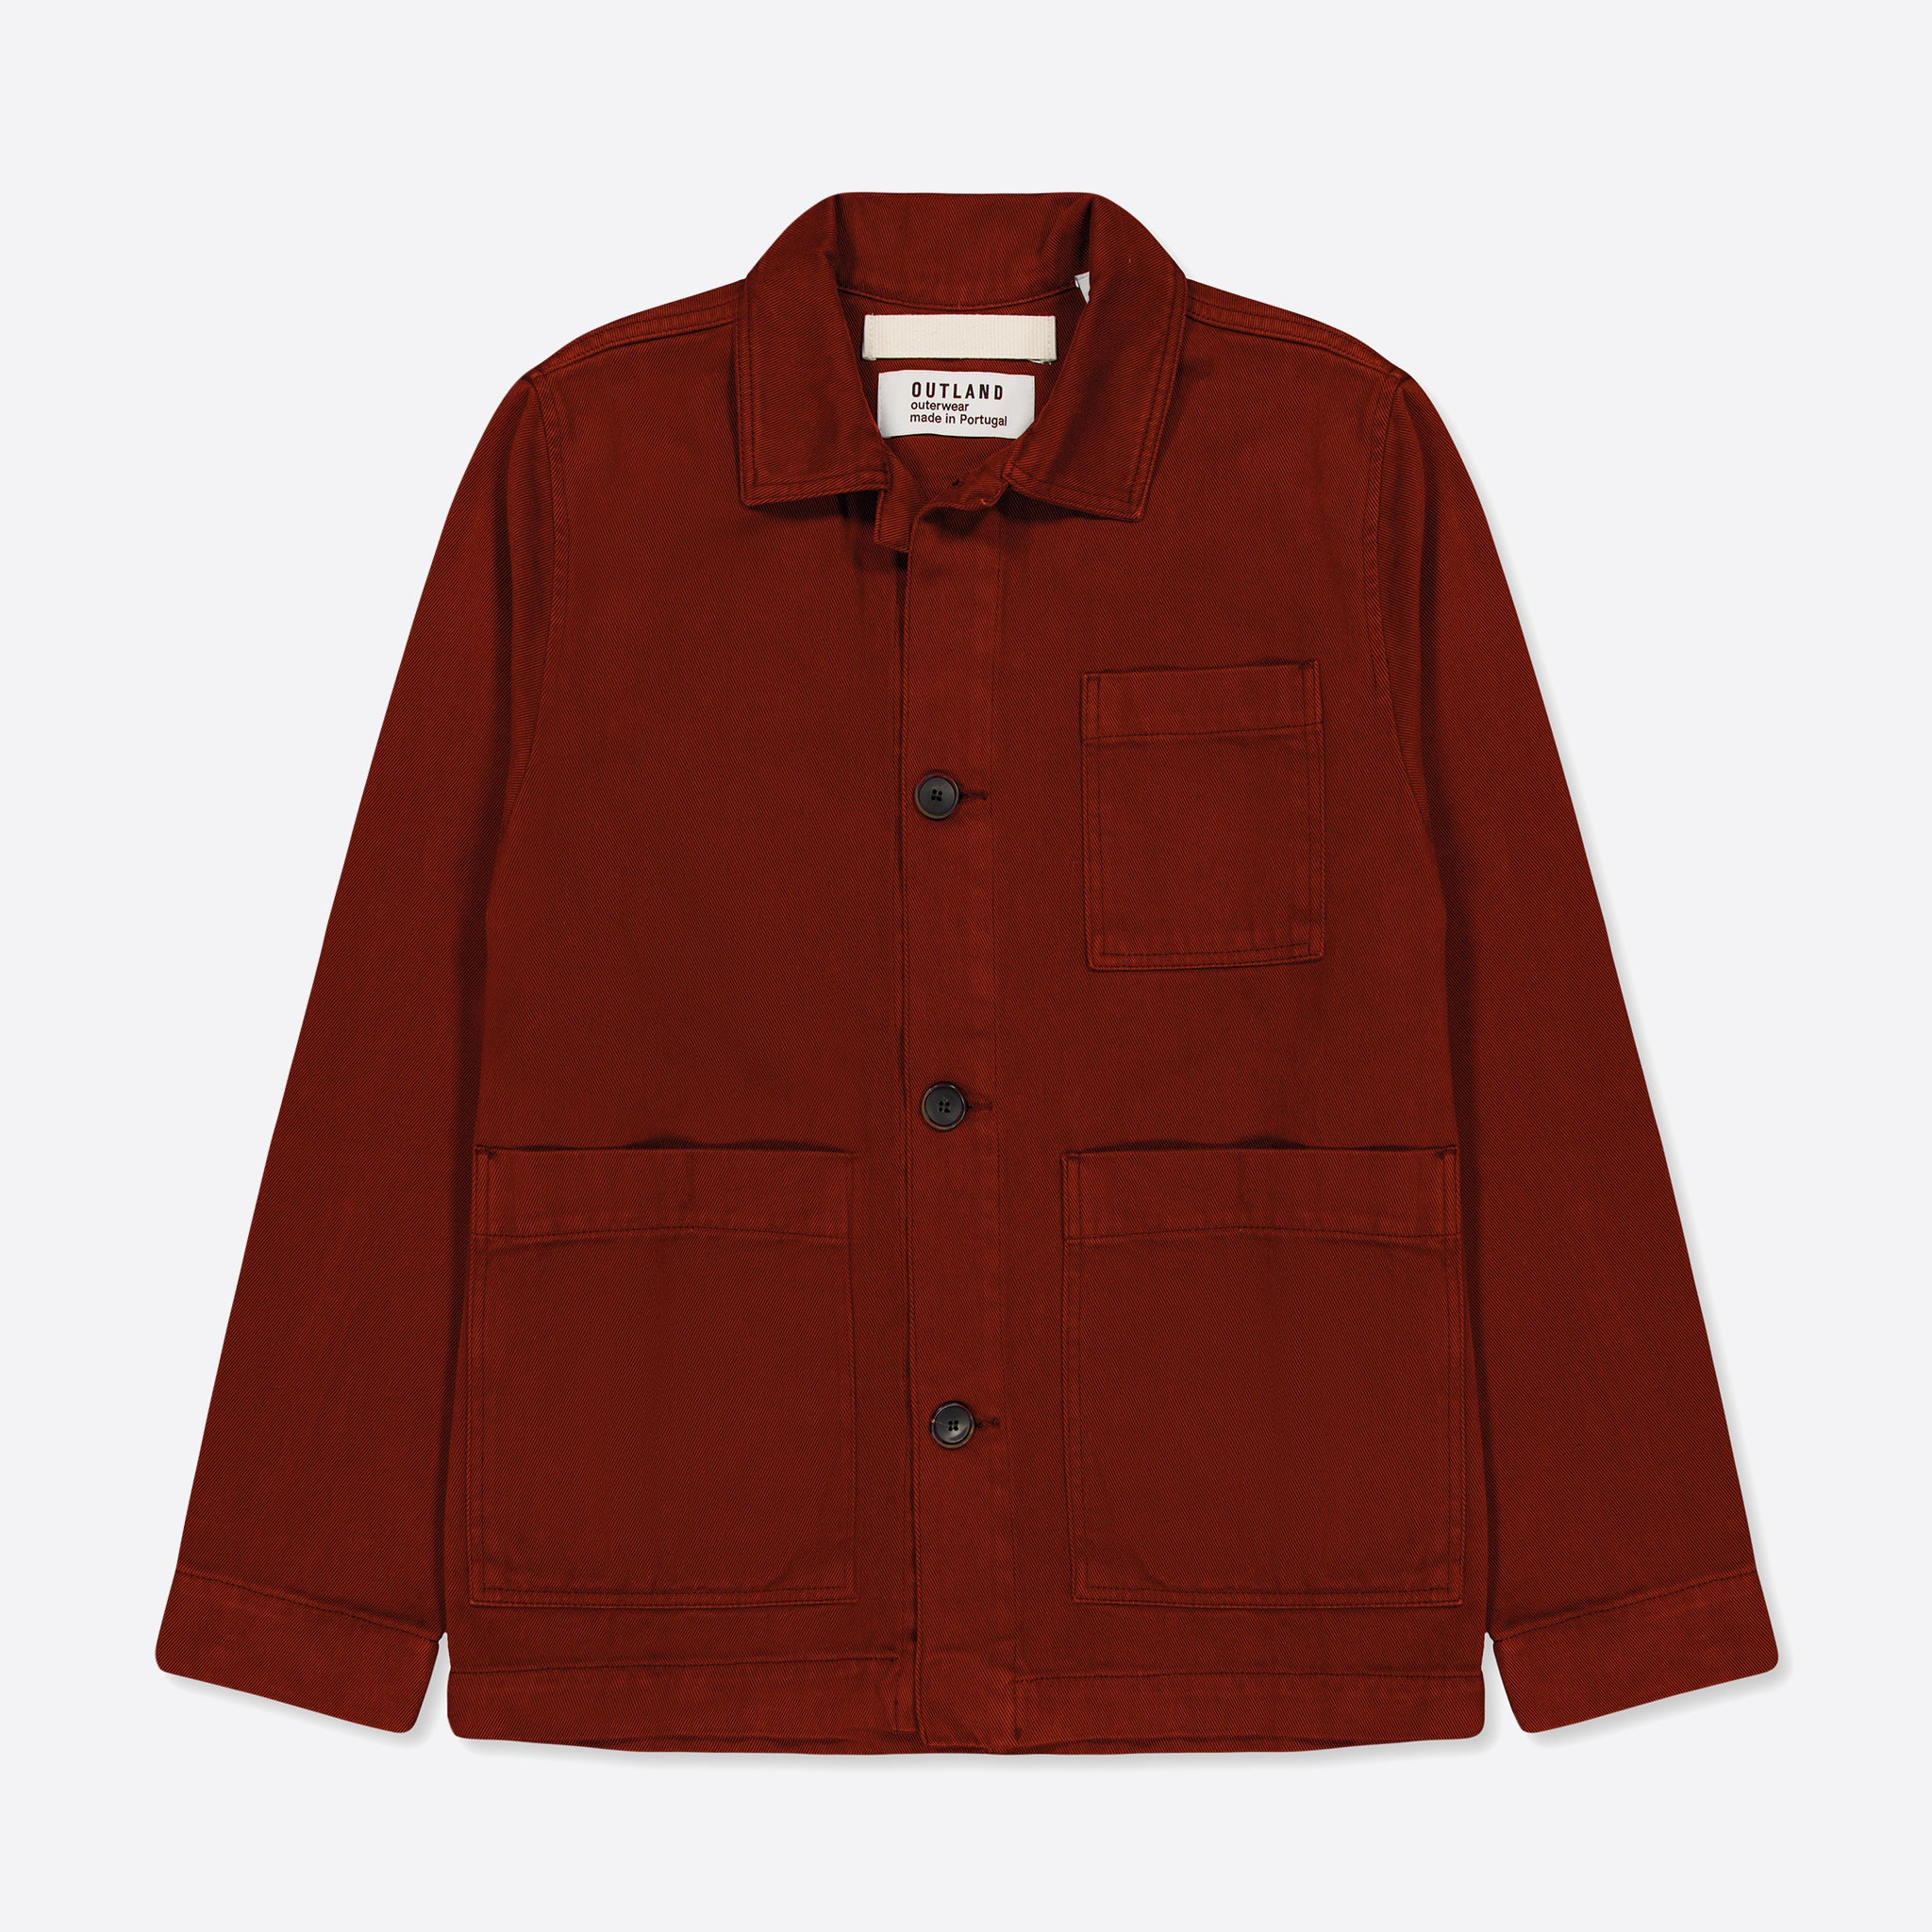 OUTLAND Dubliner Twill Jacket in Rust